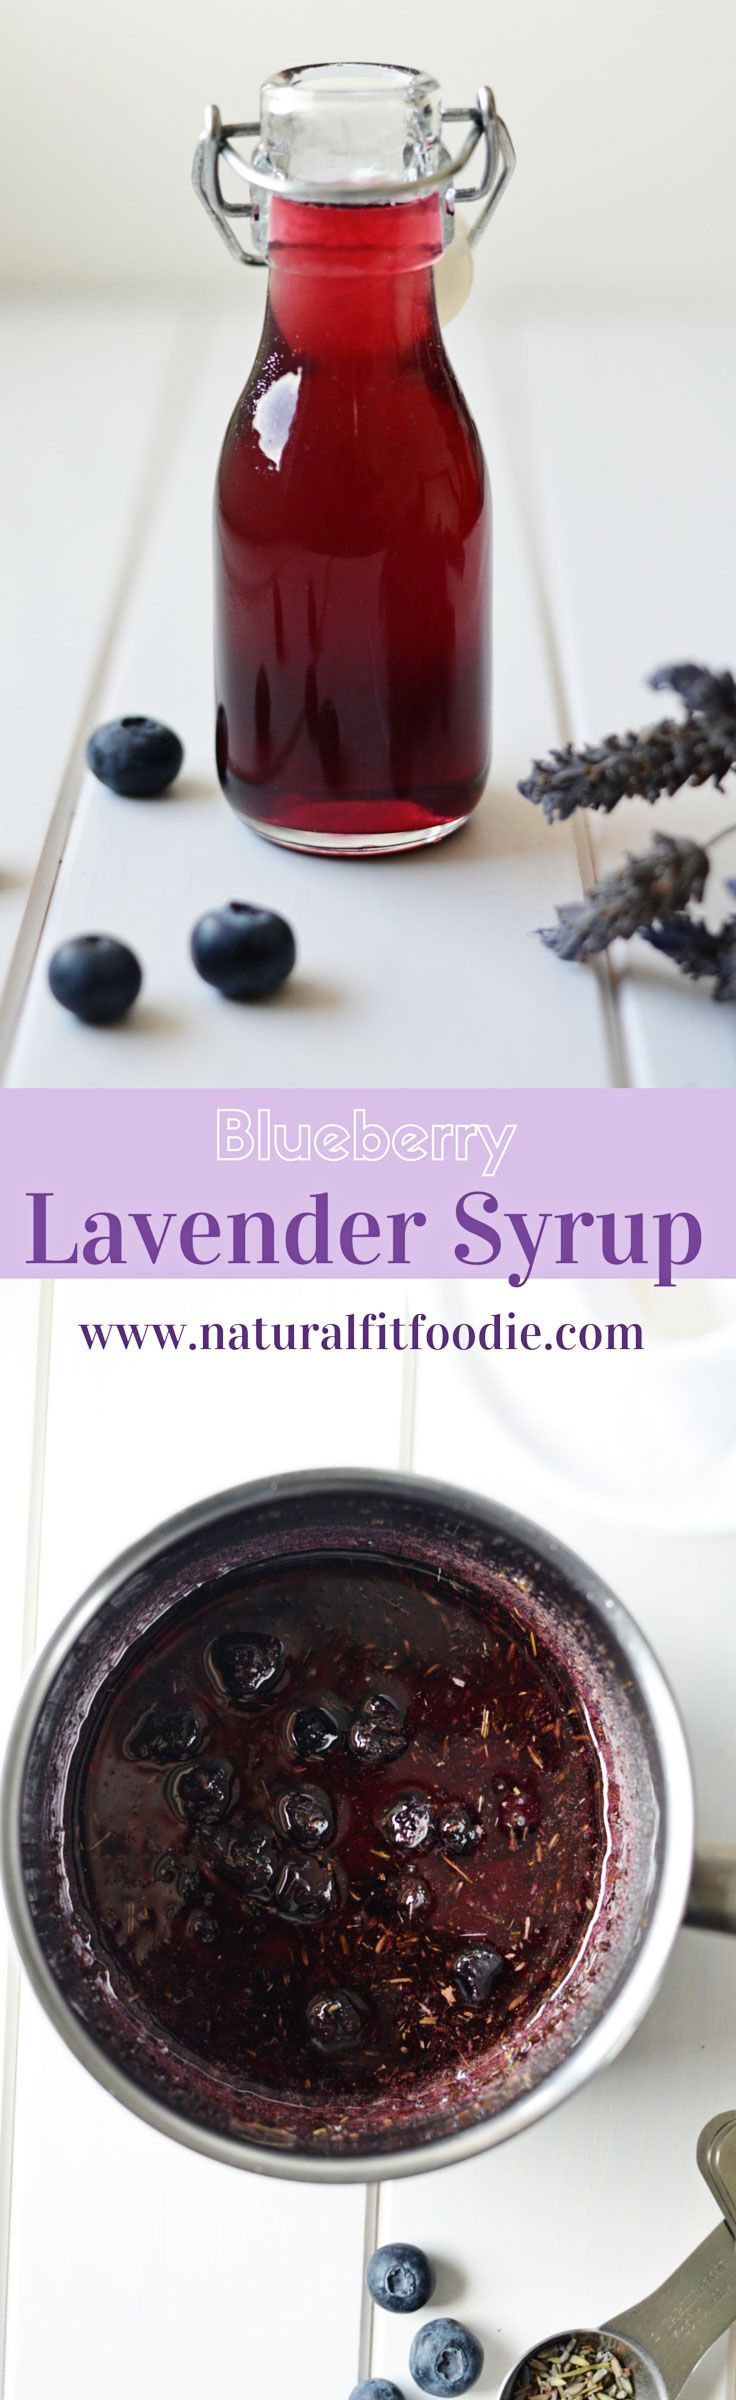 This blueberry lavender syrup is extremely versatile and good for you! Add a lovely botanical flavour to your coffee, tea, cocktails, yogurt and more.